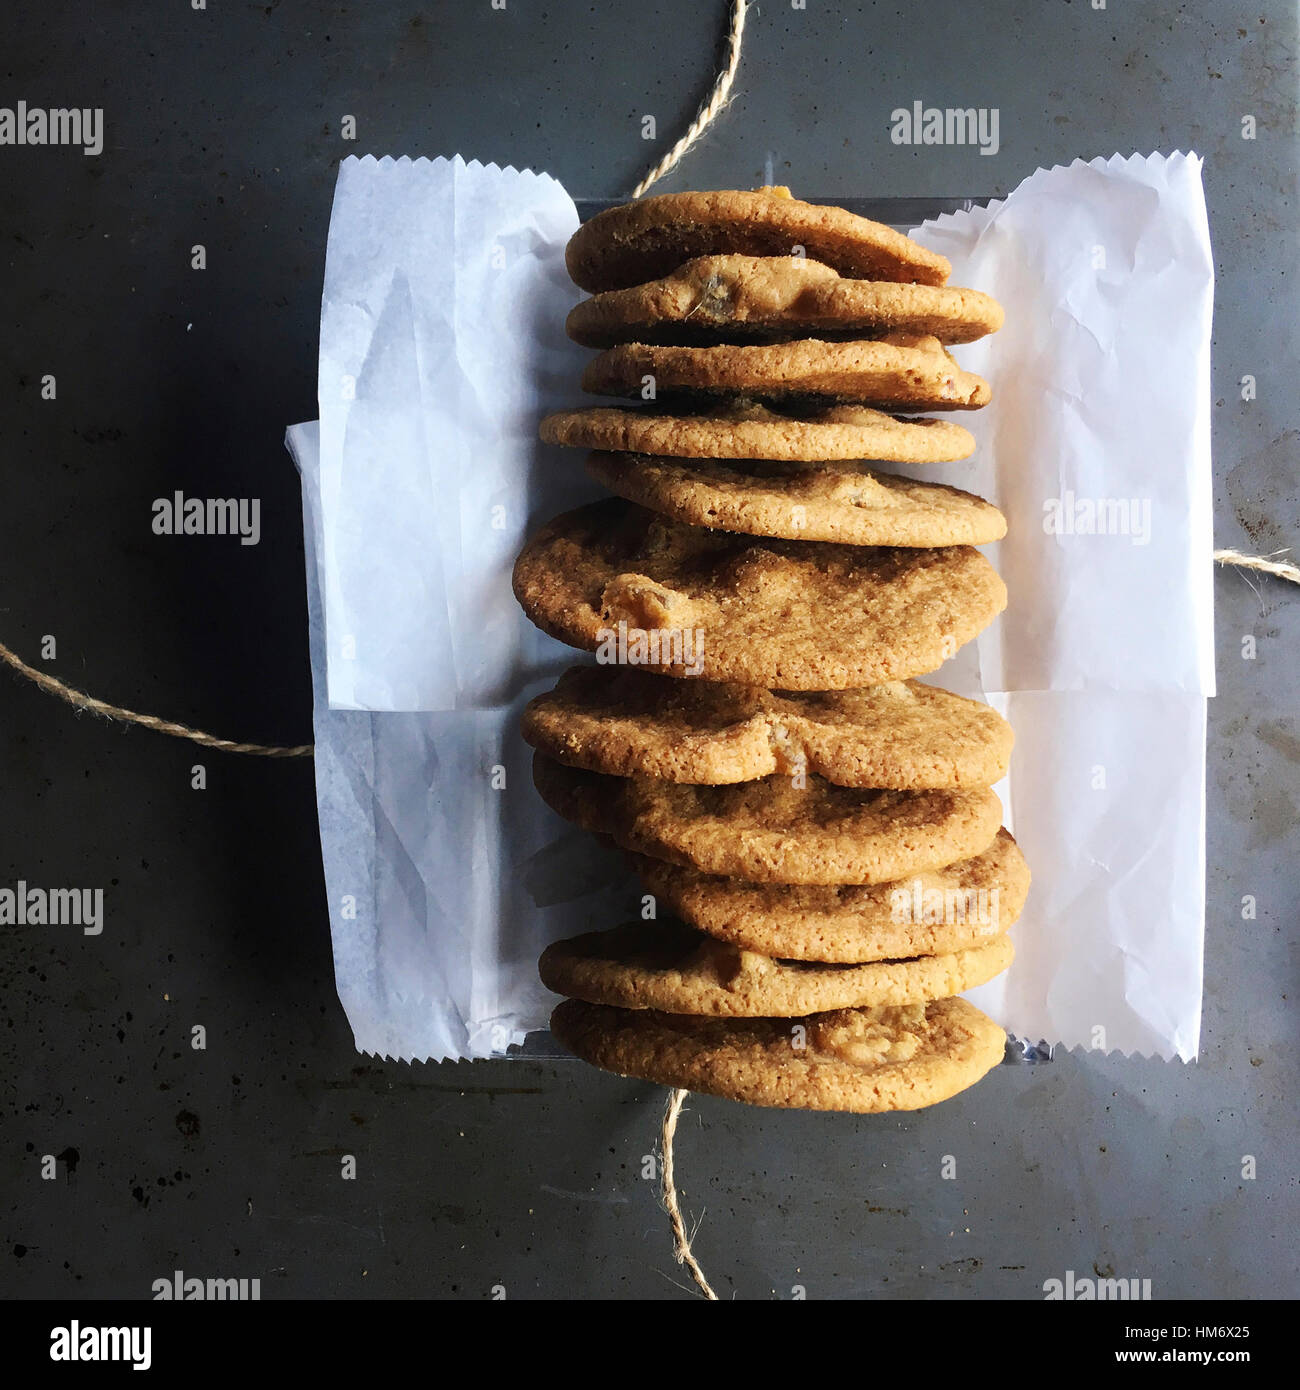 Overhead view of cookies on table - Stock Image